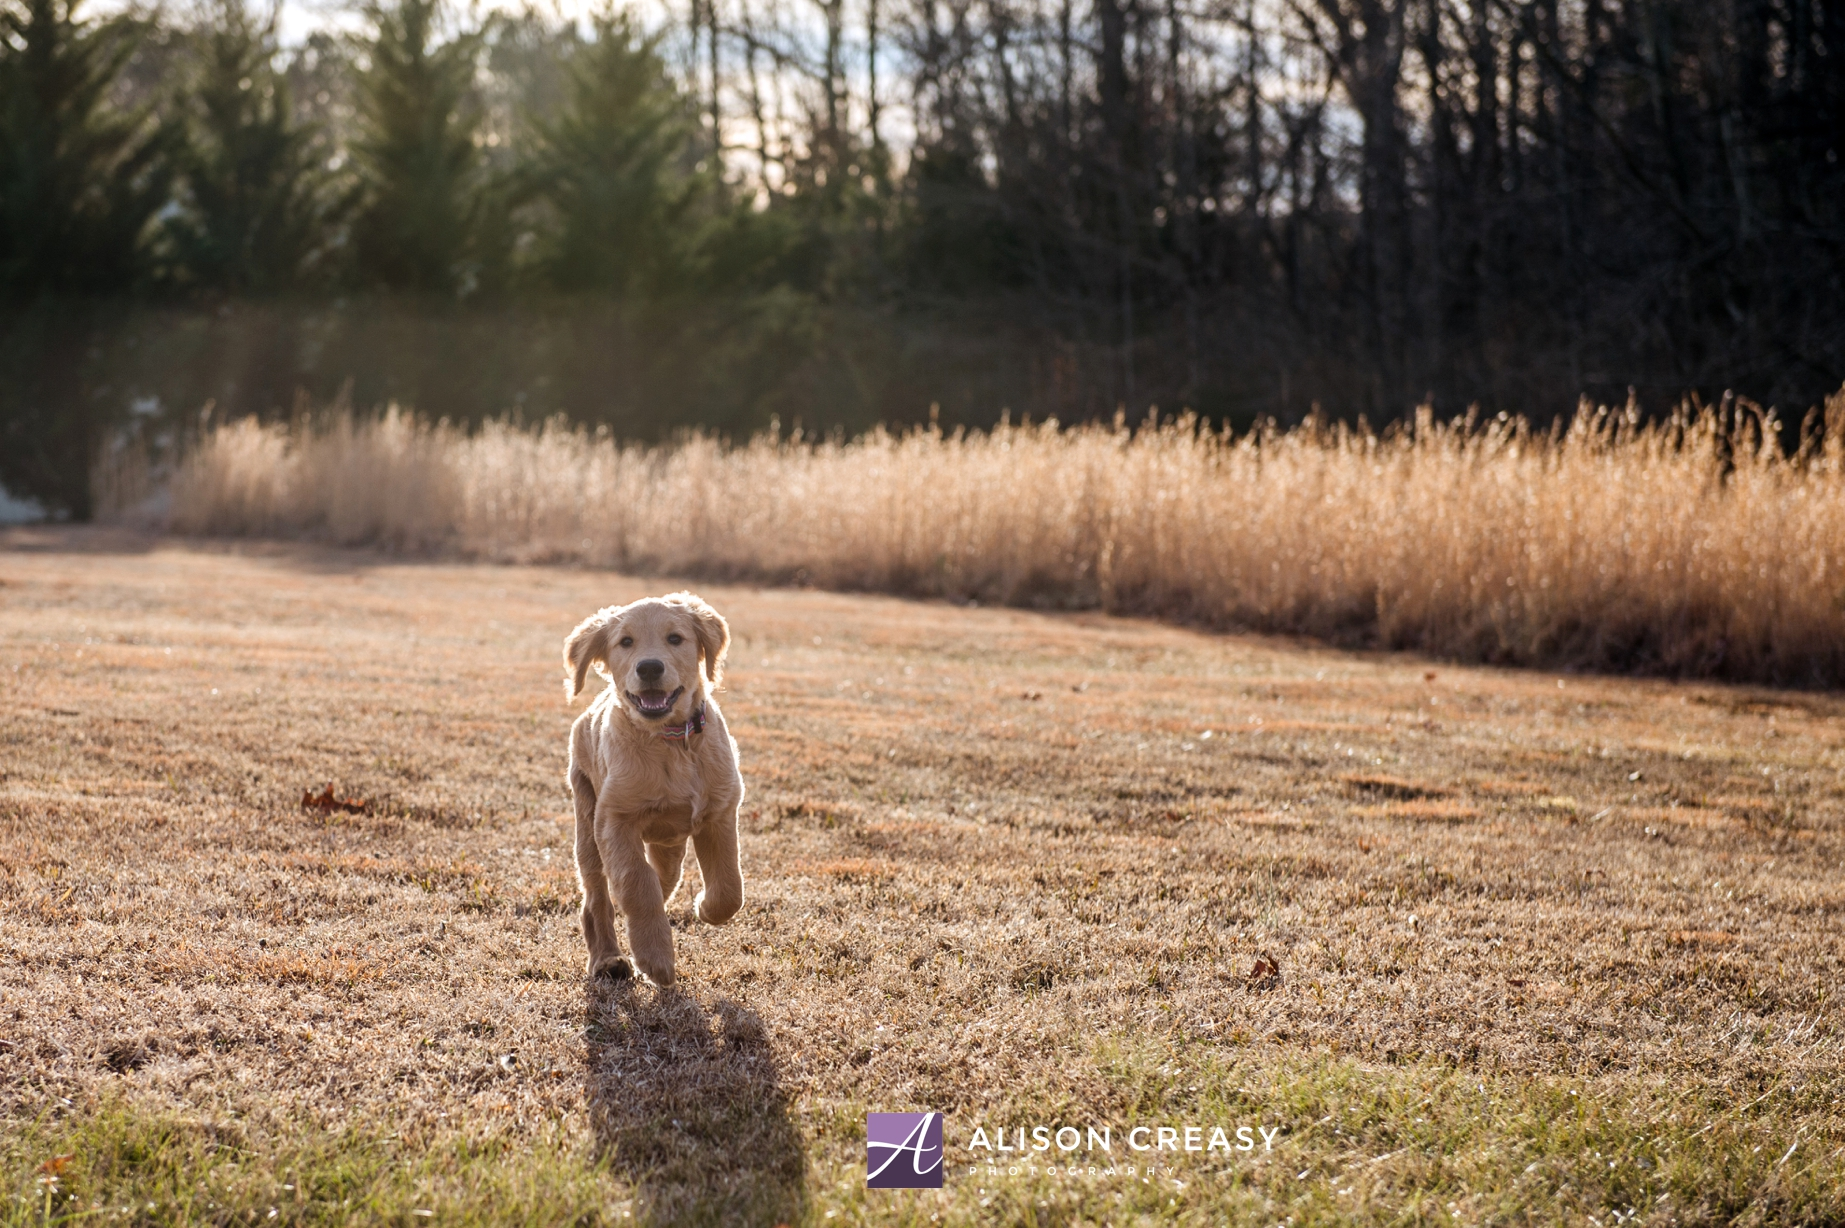 Alison-Creasy-Photography-Lynchburg-VA-Pet-Photographer_0012.jpg